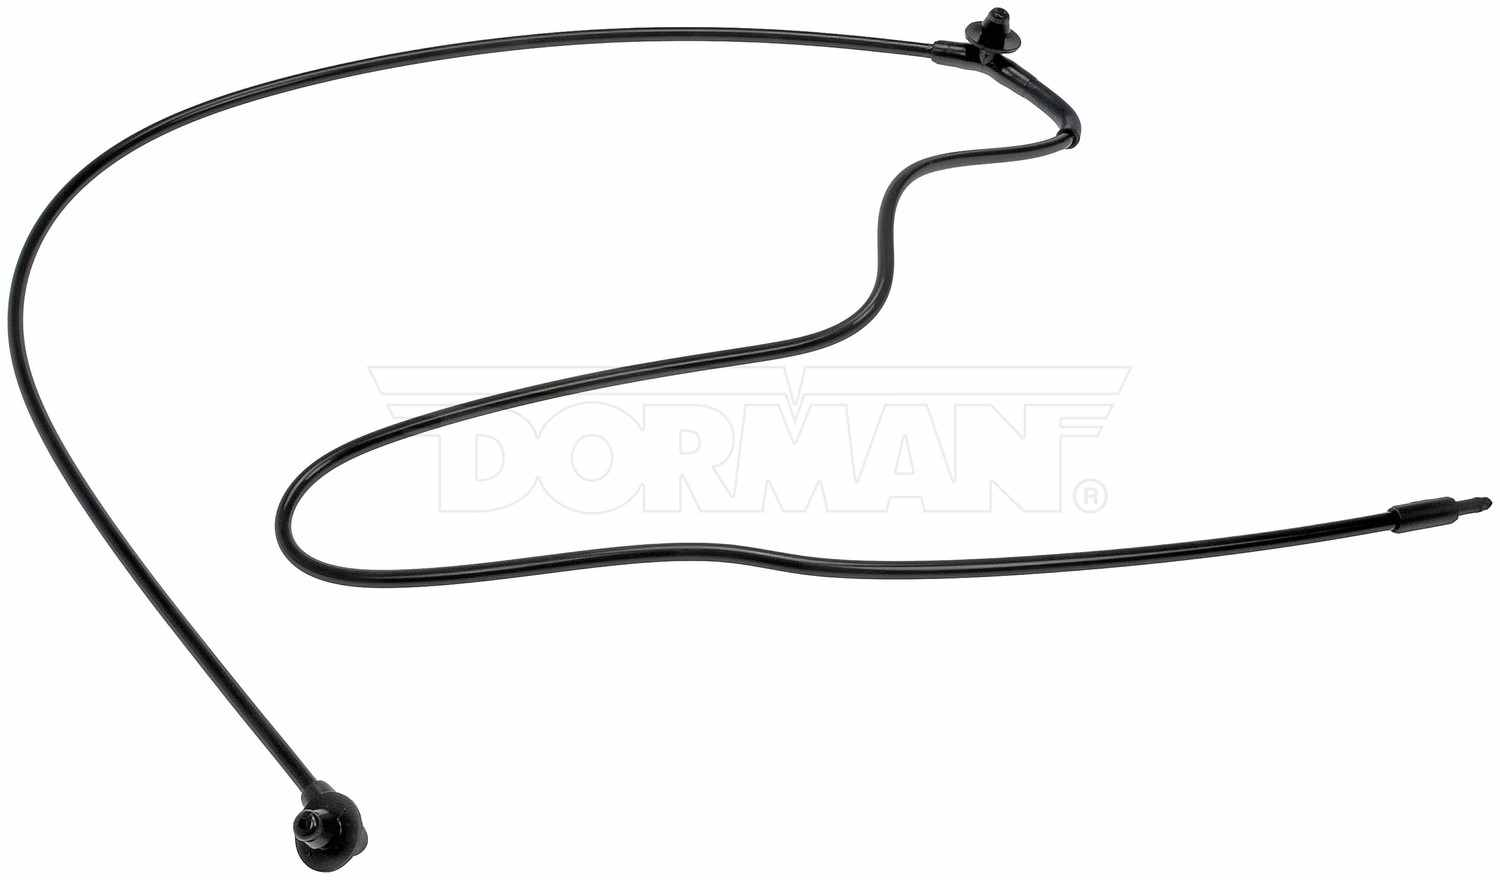 Windshield Washer Hose Front Dorman 924 379